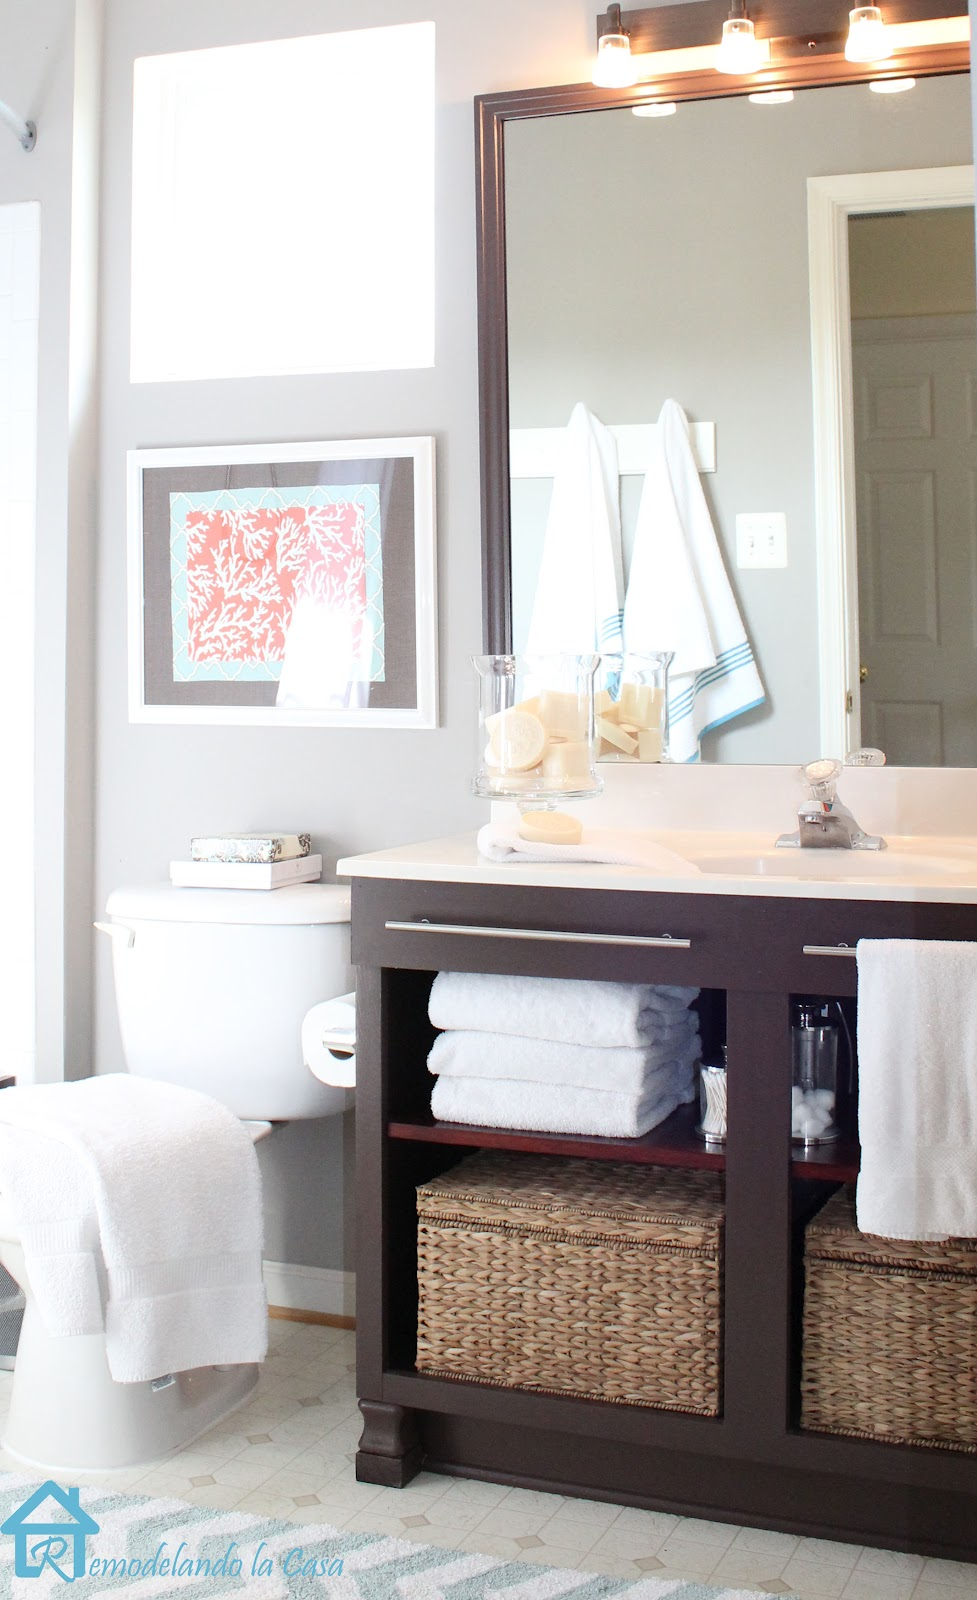 Bathroom Makeover - Remodelando la Casa